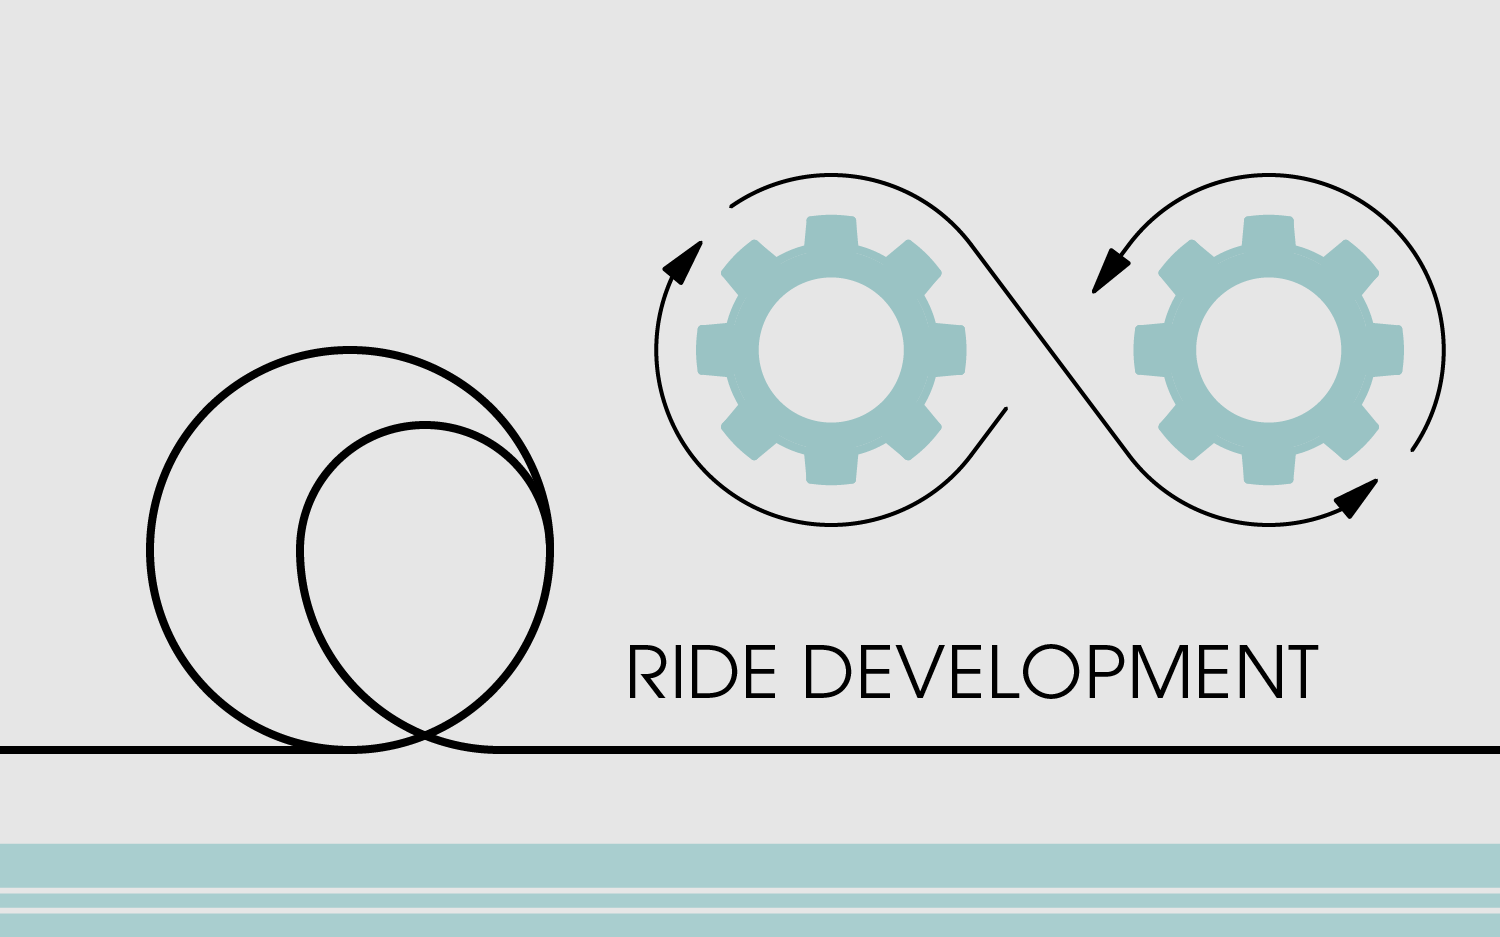 Ride Development